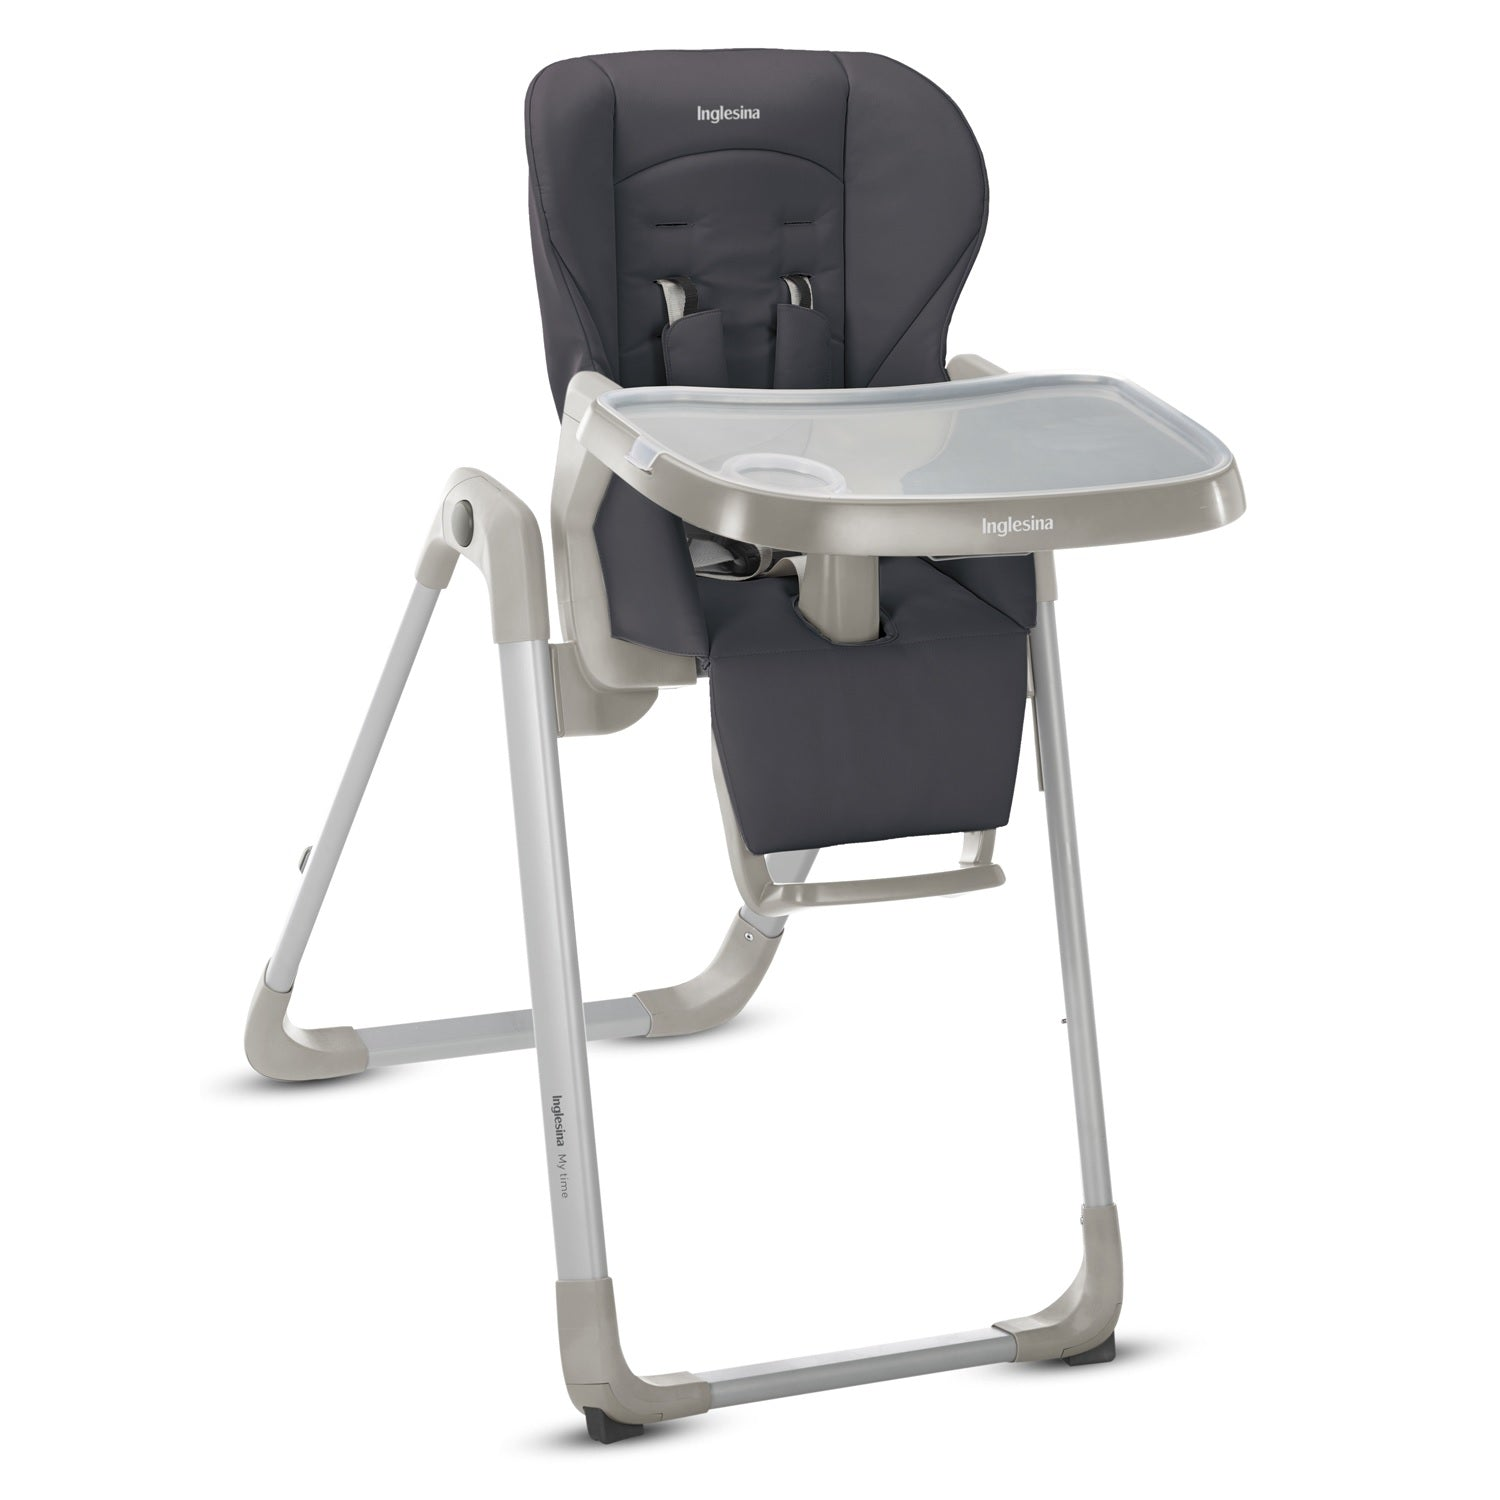 Pleasing Inglesina Mytime High Chair Ibusinesslaw Wood Chair Design Ideas Ibusinesslaworg